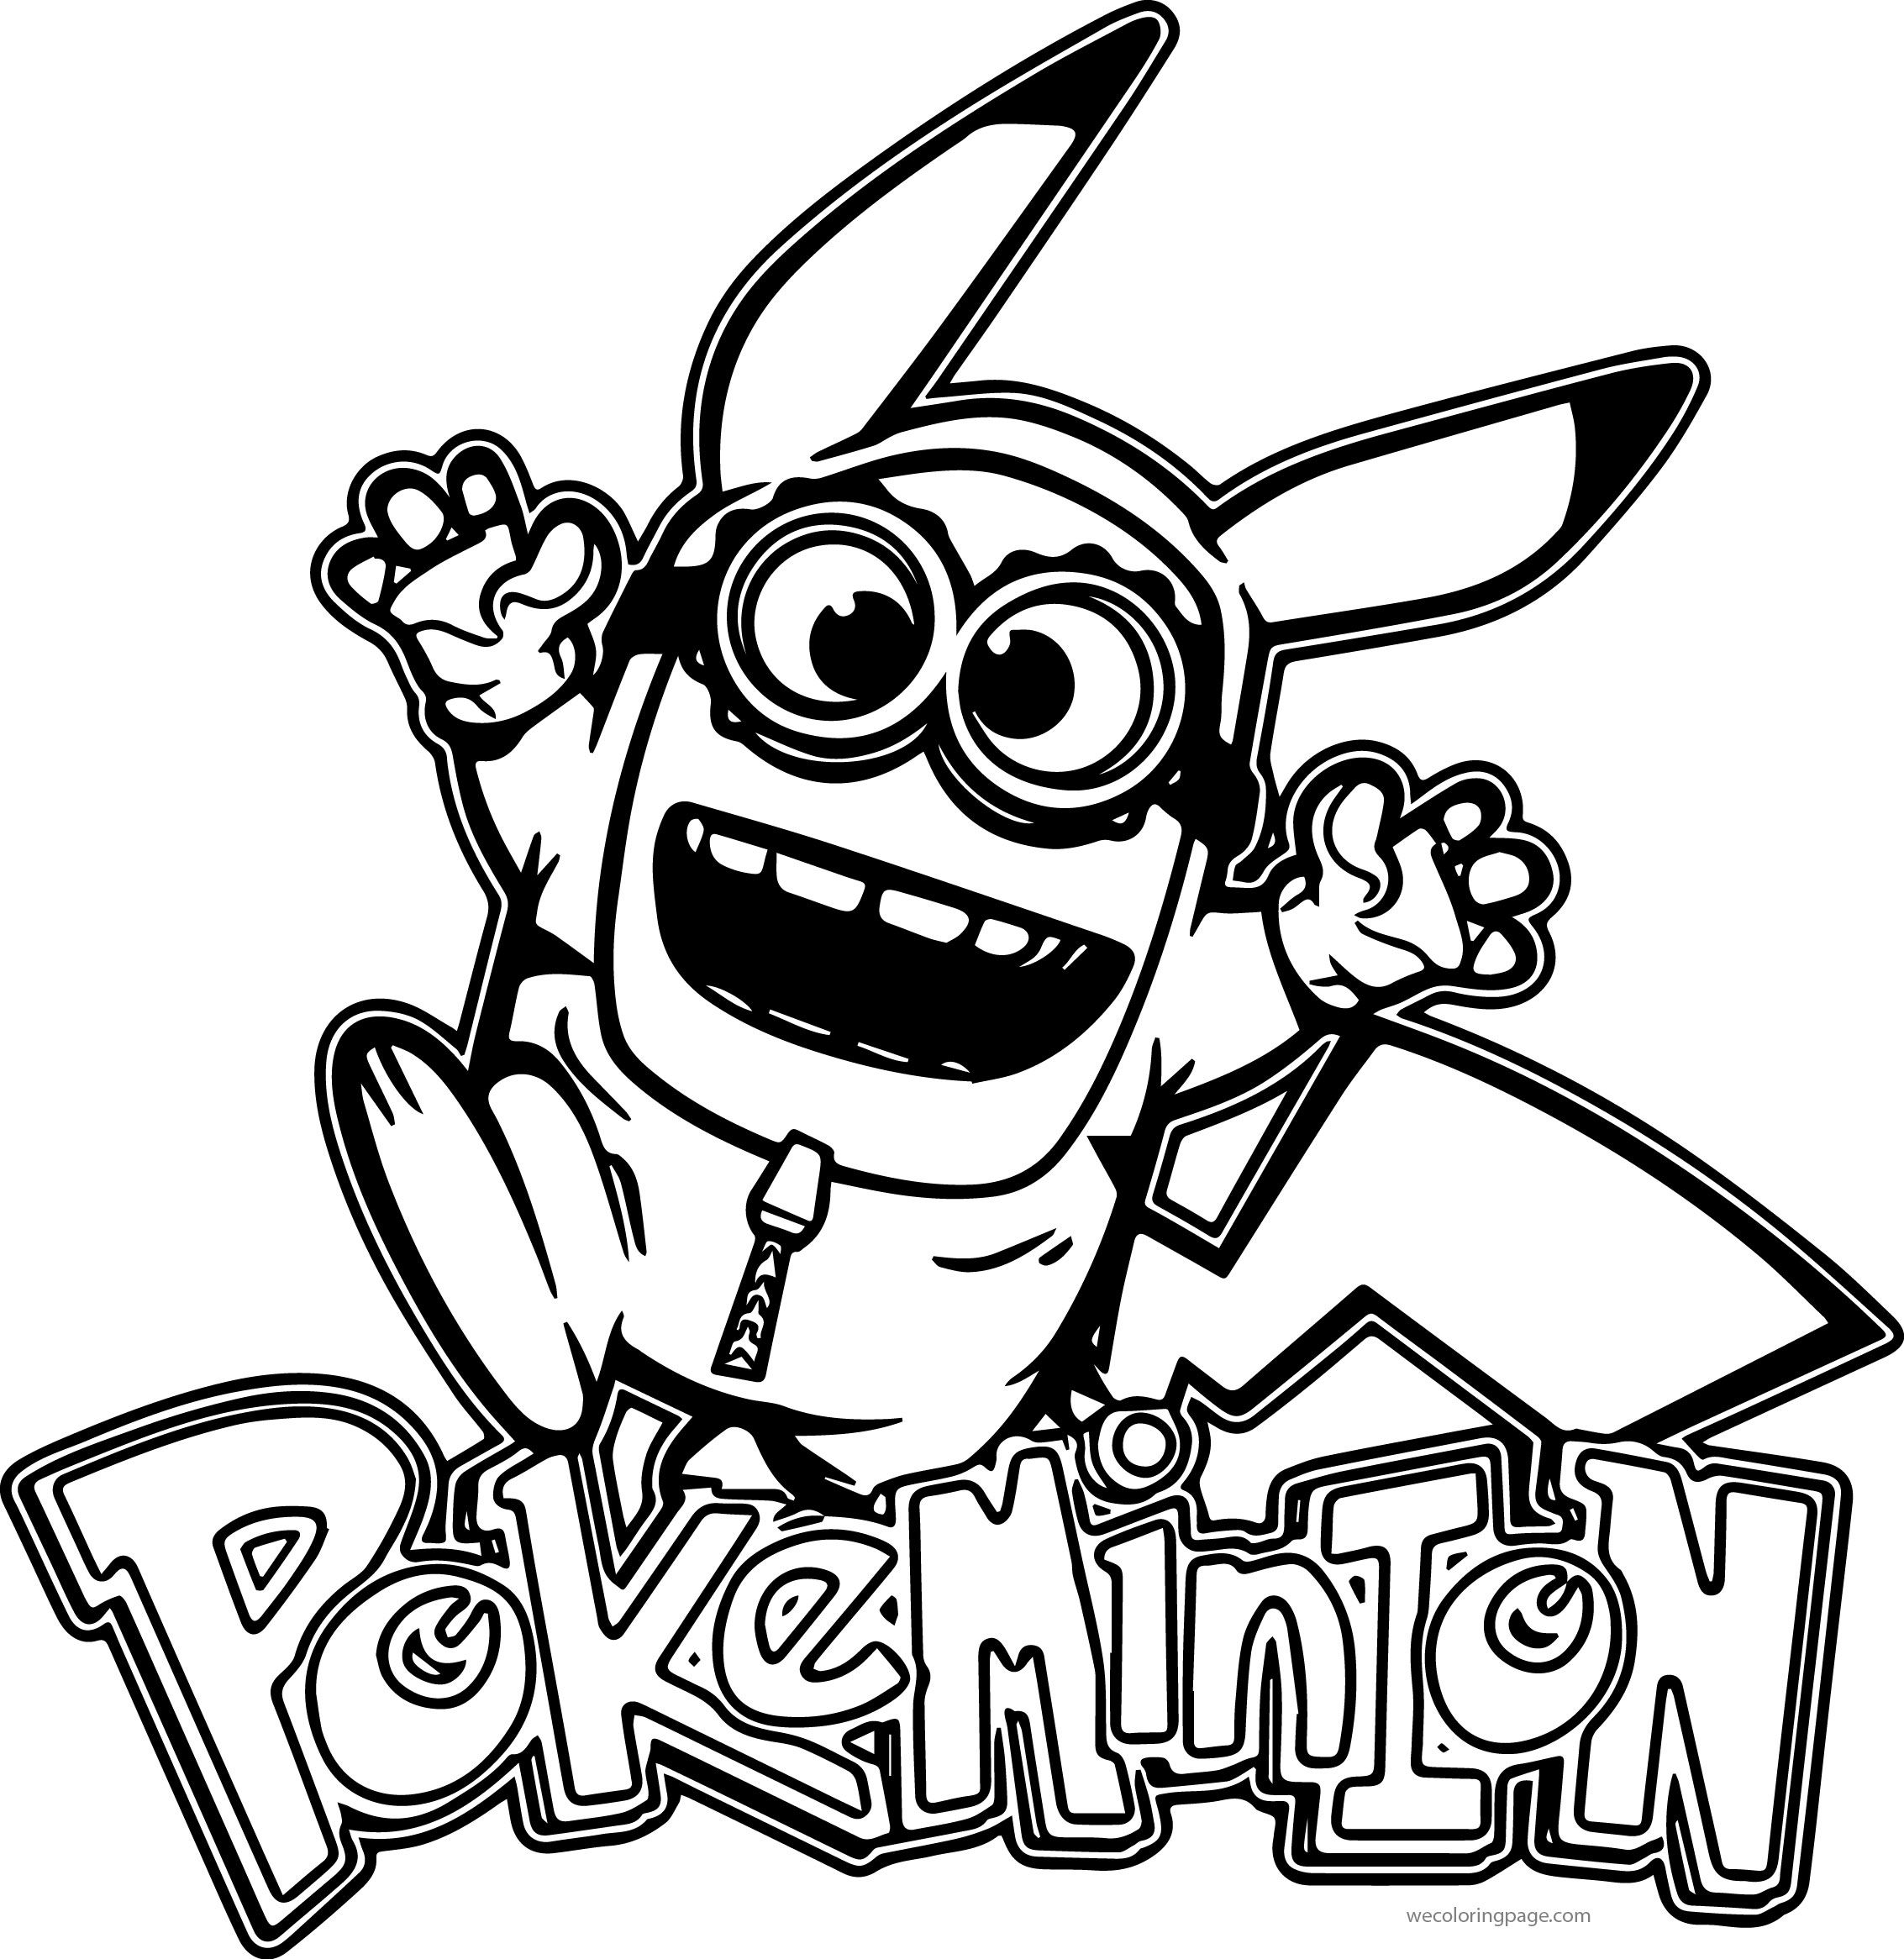 Awesome Minion Pikachu Pokeminion Coloring Page With Images